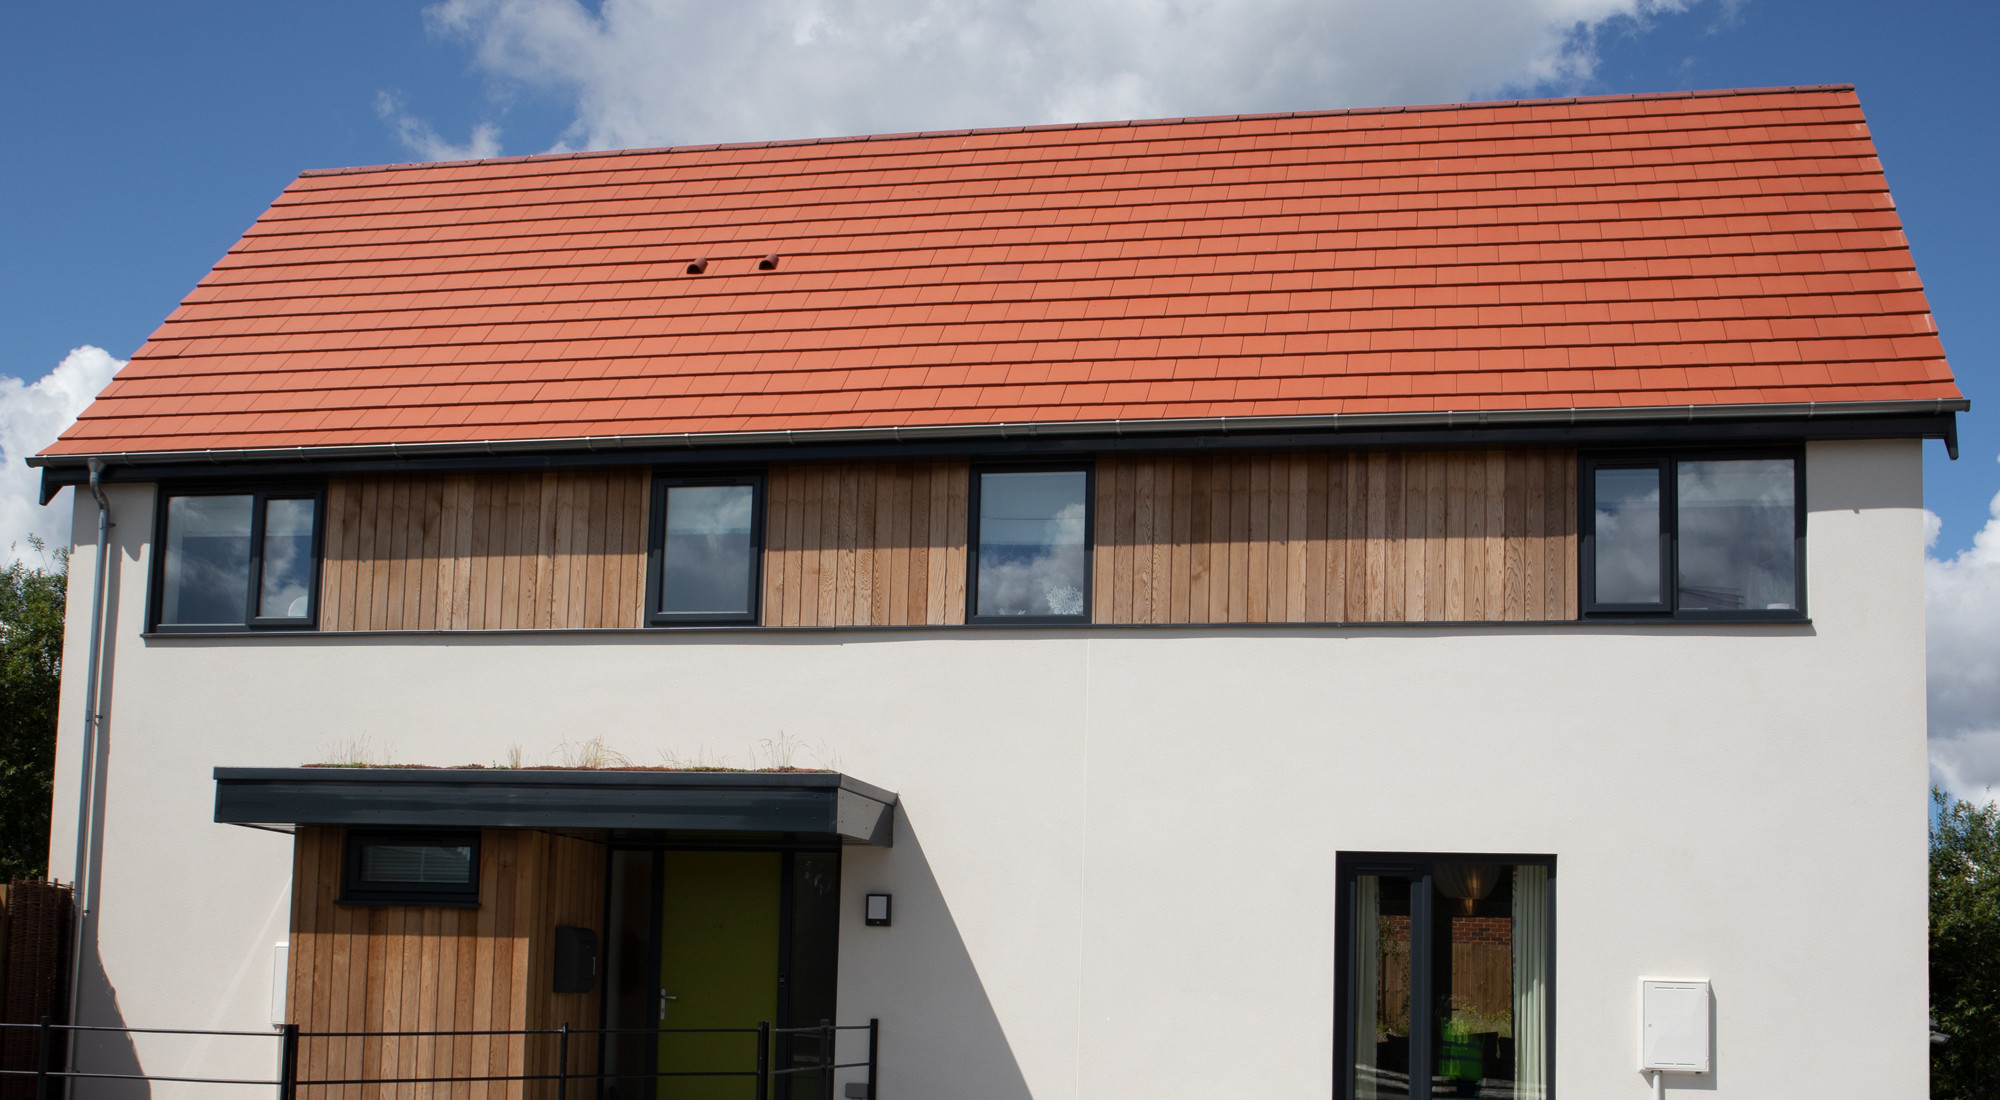 Planum Concrete Roof Tile in Cayenne Red